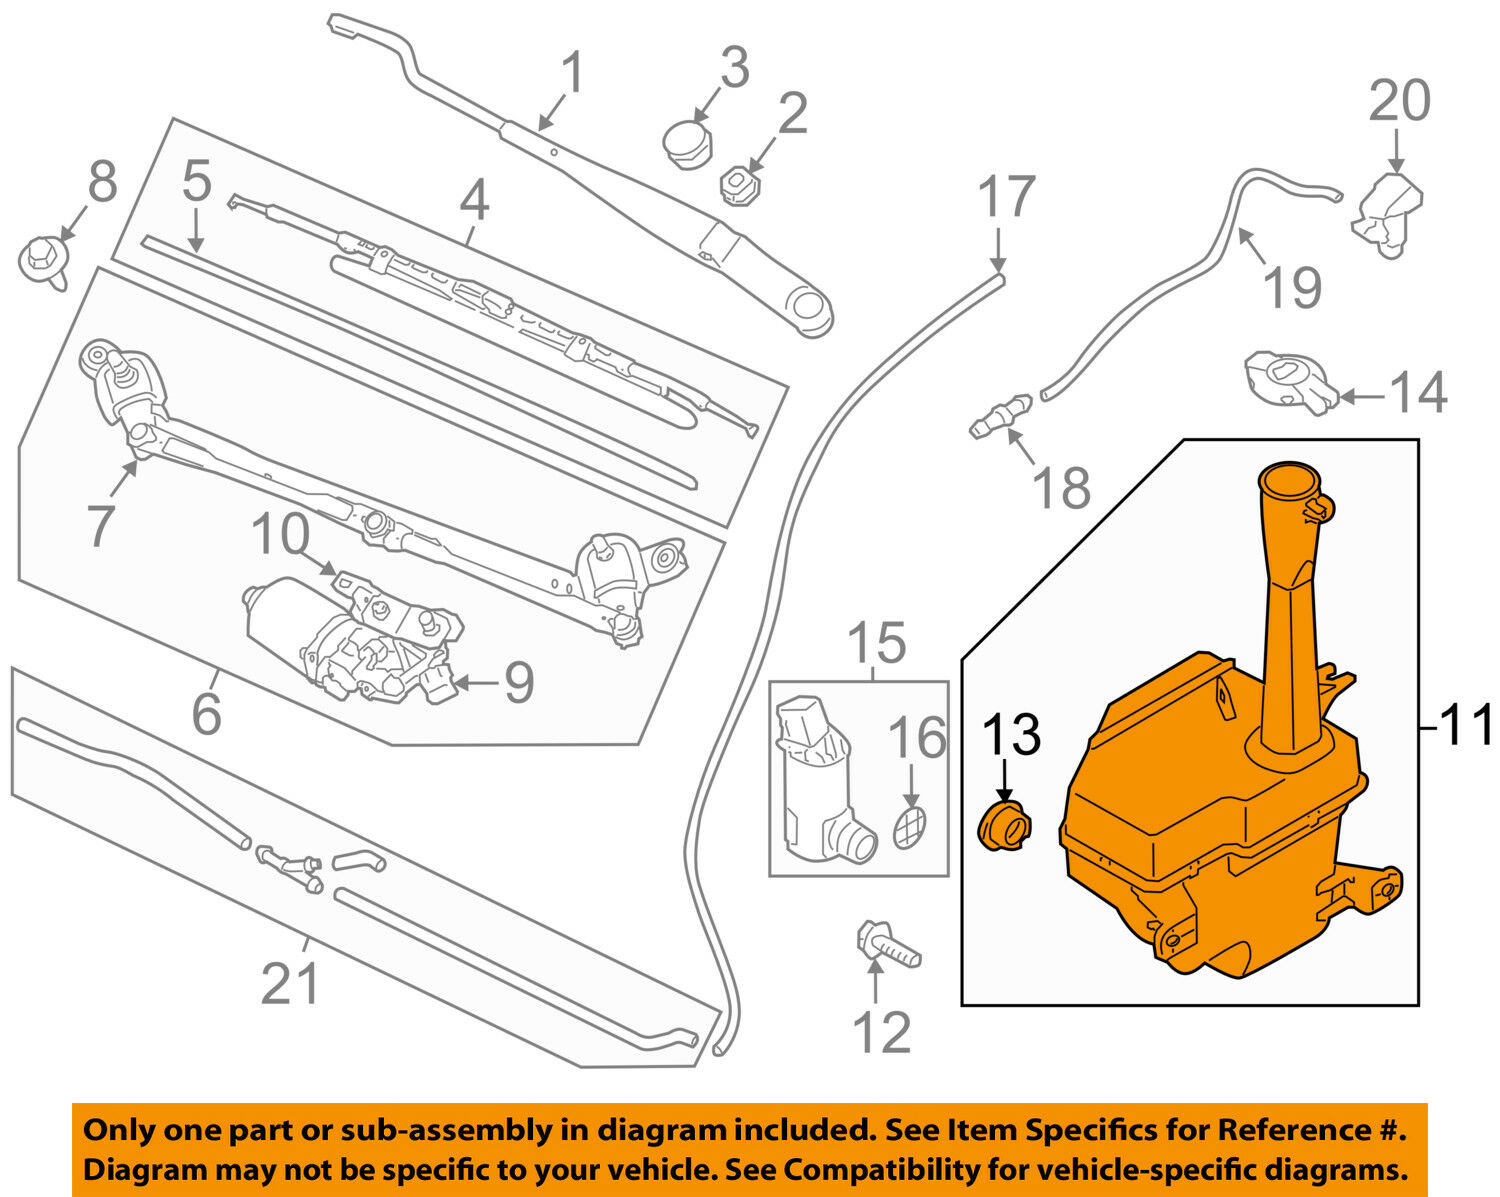 KIA OEM 10-13 Forte Wiper Washer-Windshield Fluid-Reservoir Tank 986201M100  1 of 2FREE Shipping See More